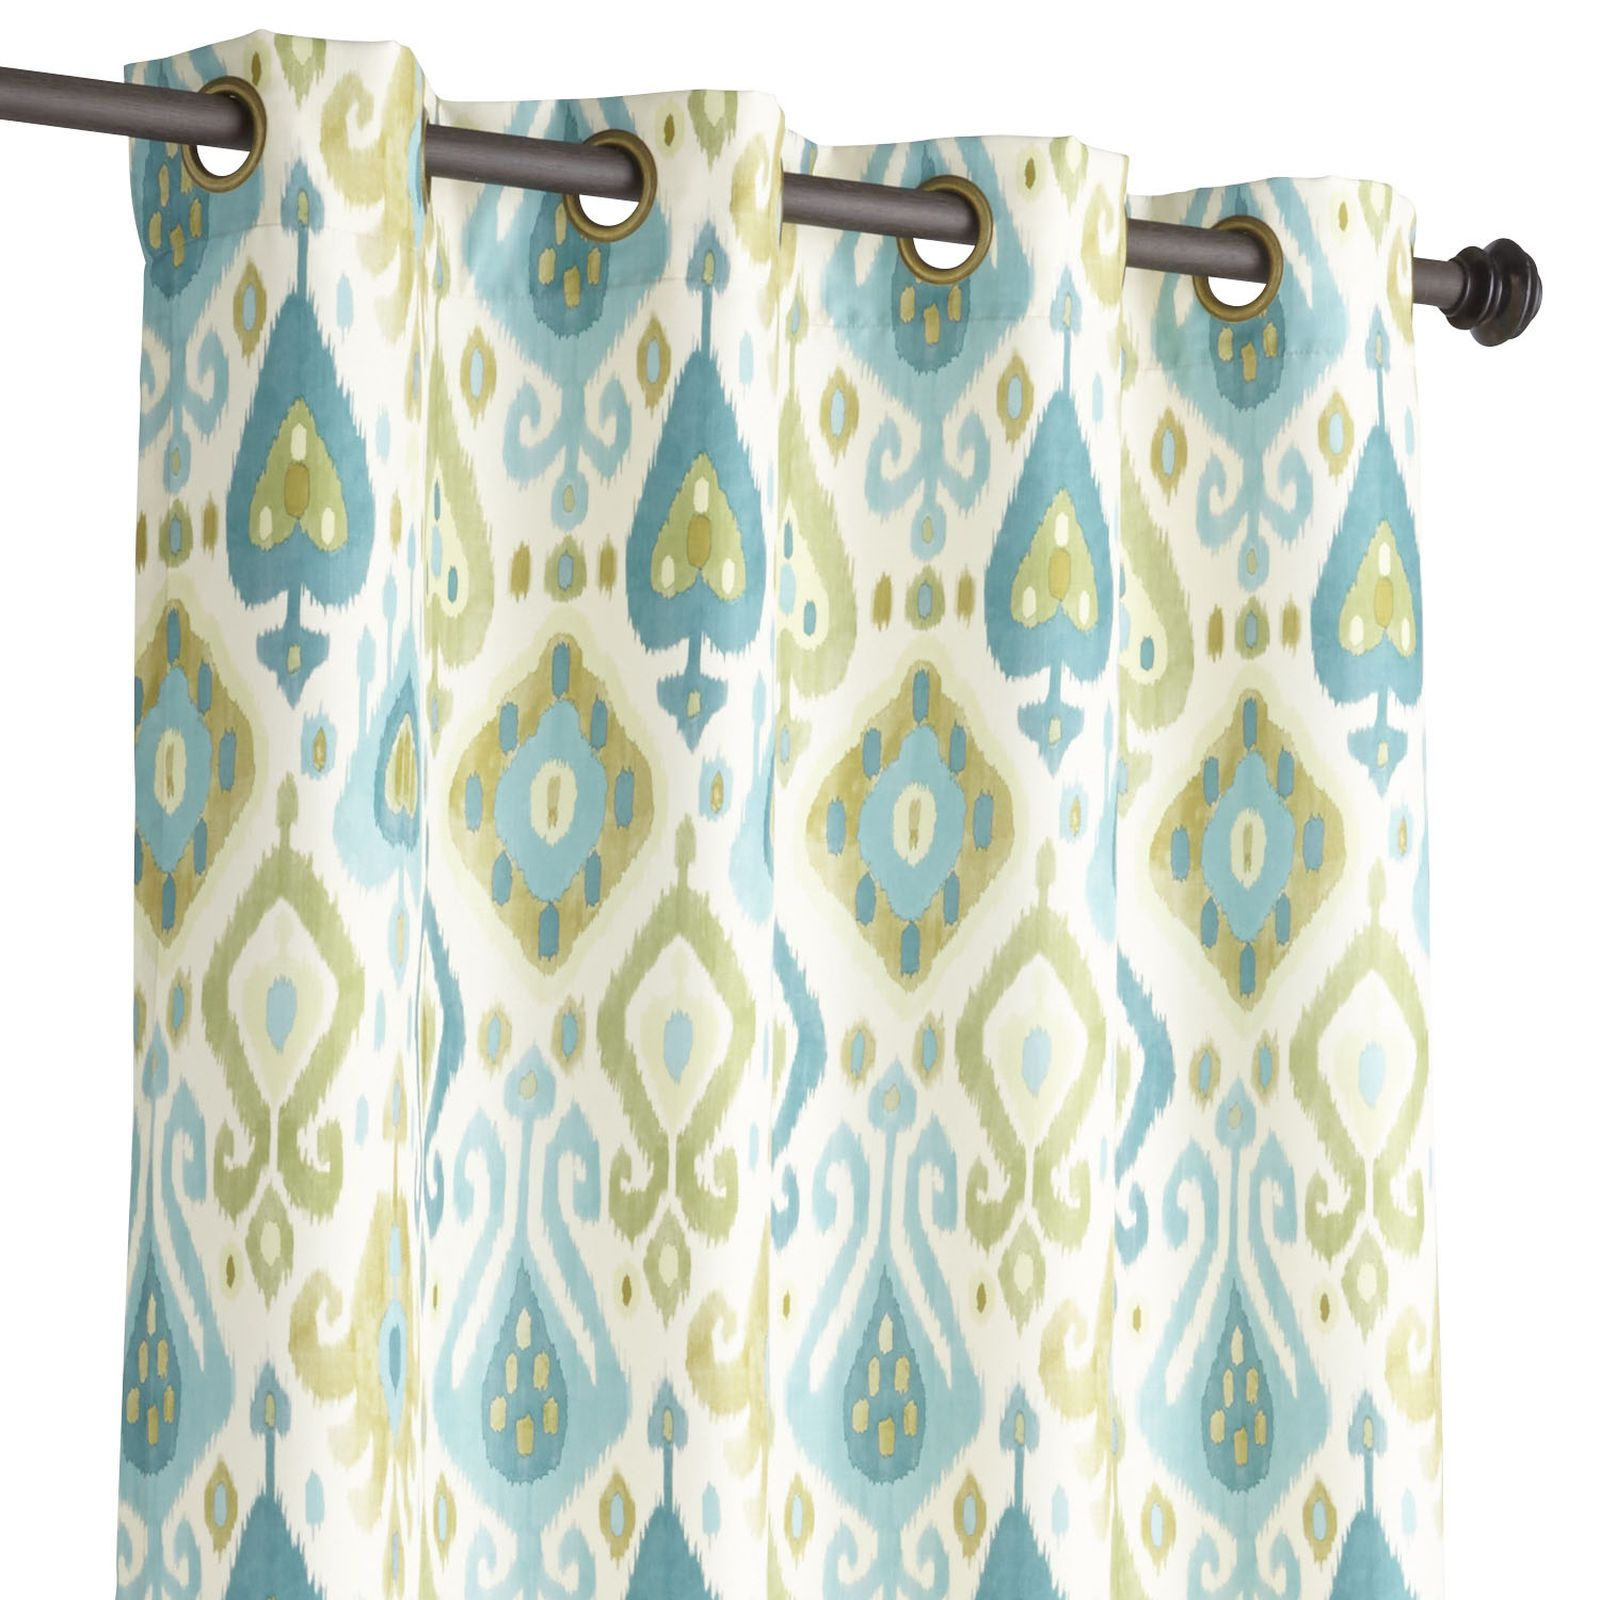 moonlit marvelous bath holiday lenox garden shower french set cool beige butterfly curtain curtains perle collection bathroom accessories and meadow yellow blue nouveau